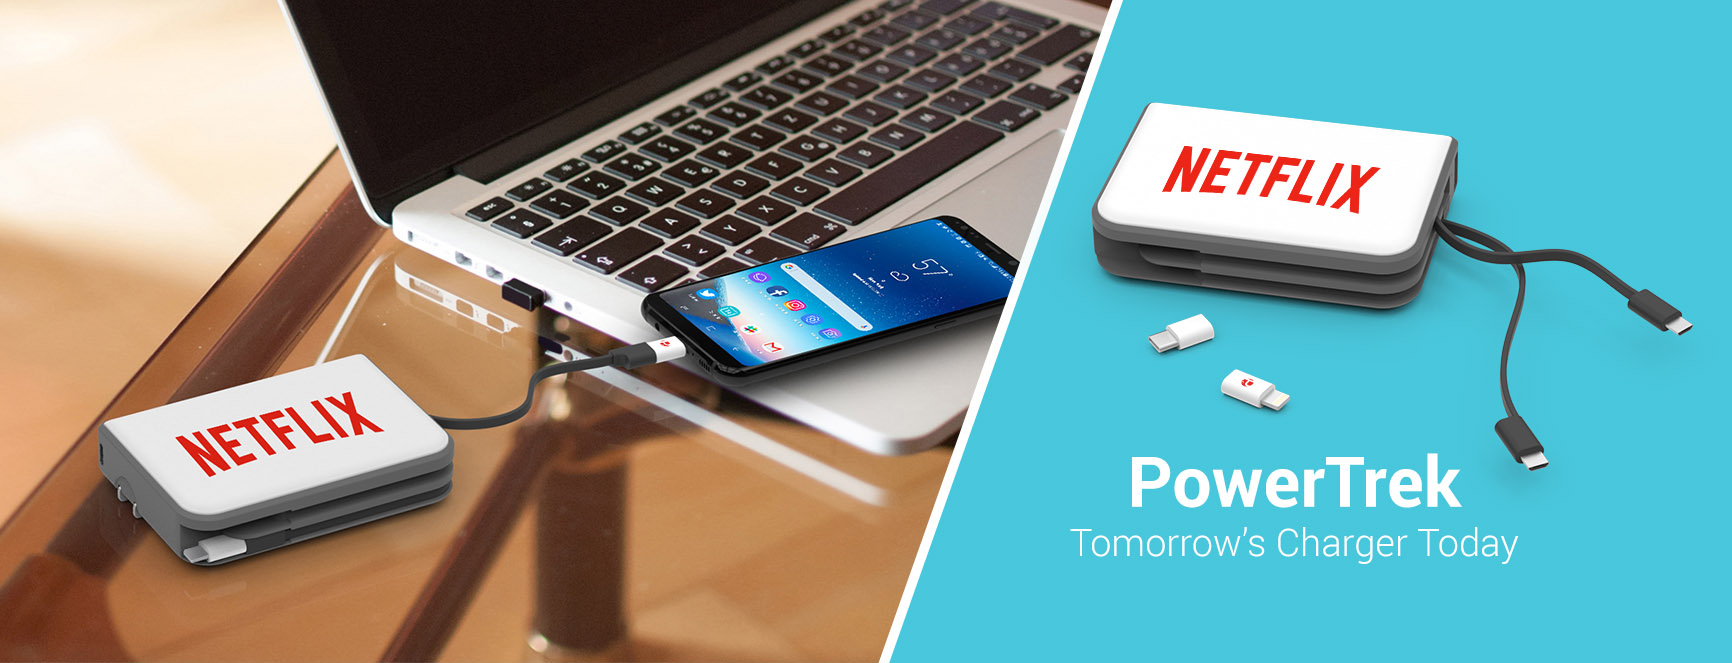 PowerTrek: Tomorrow's Charger Today